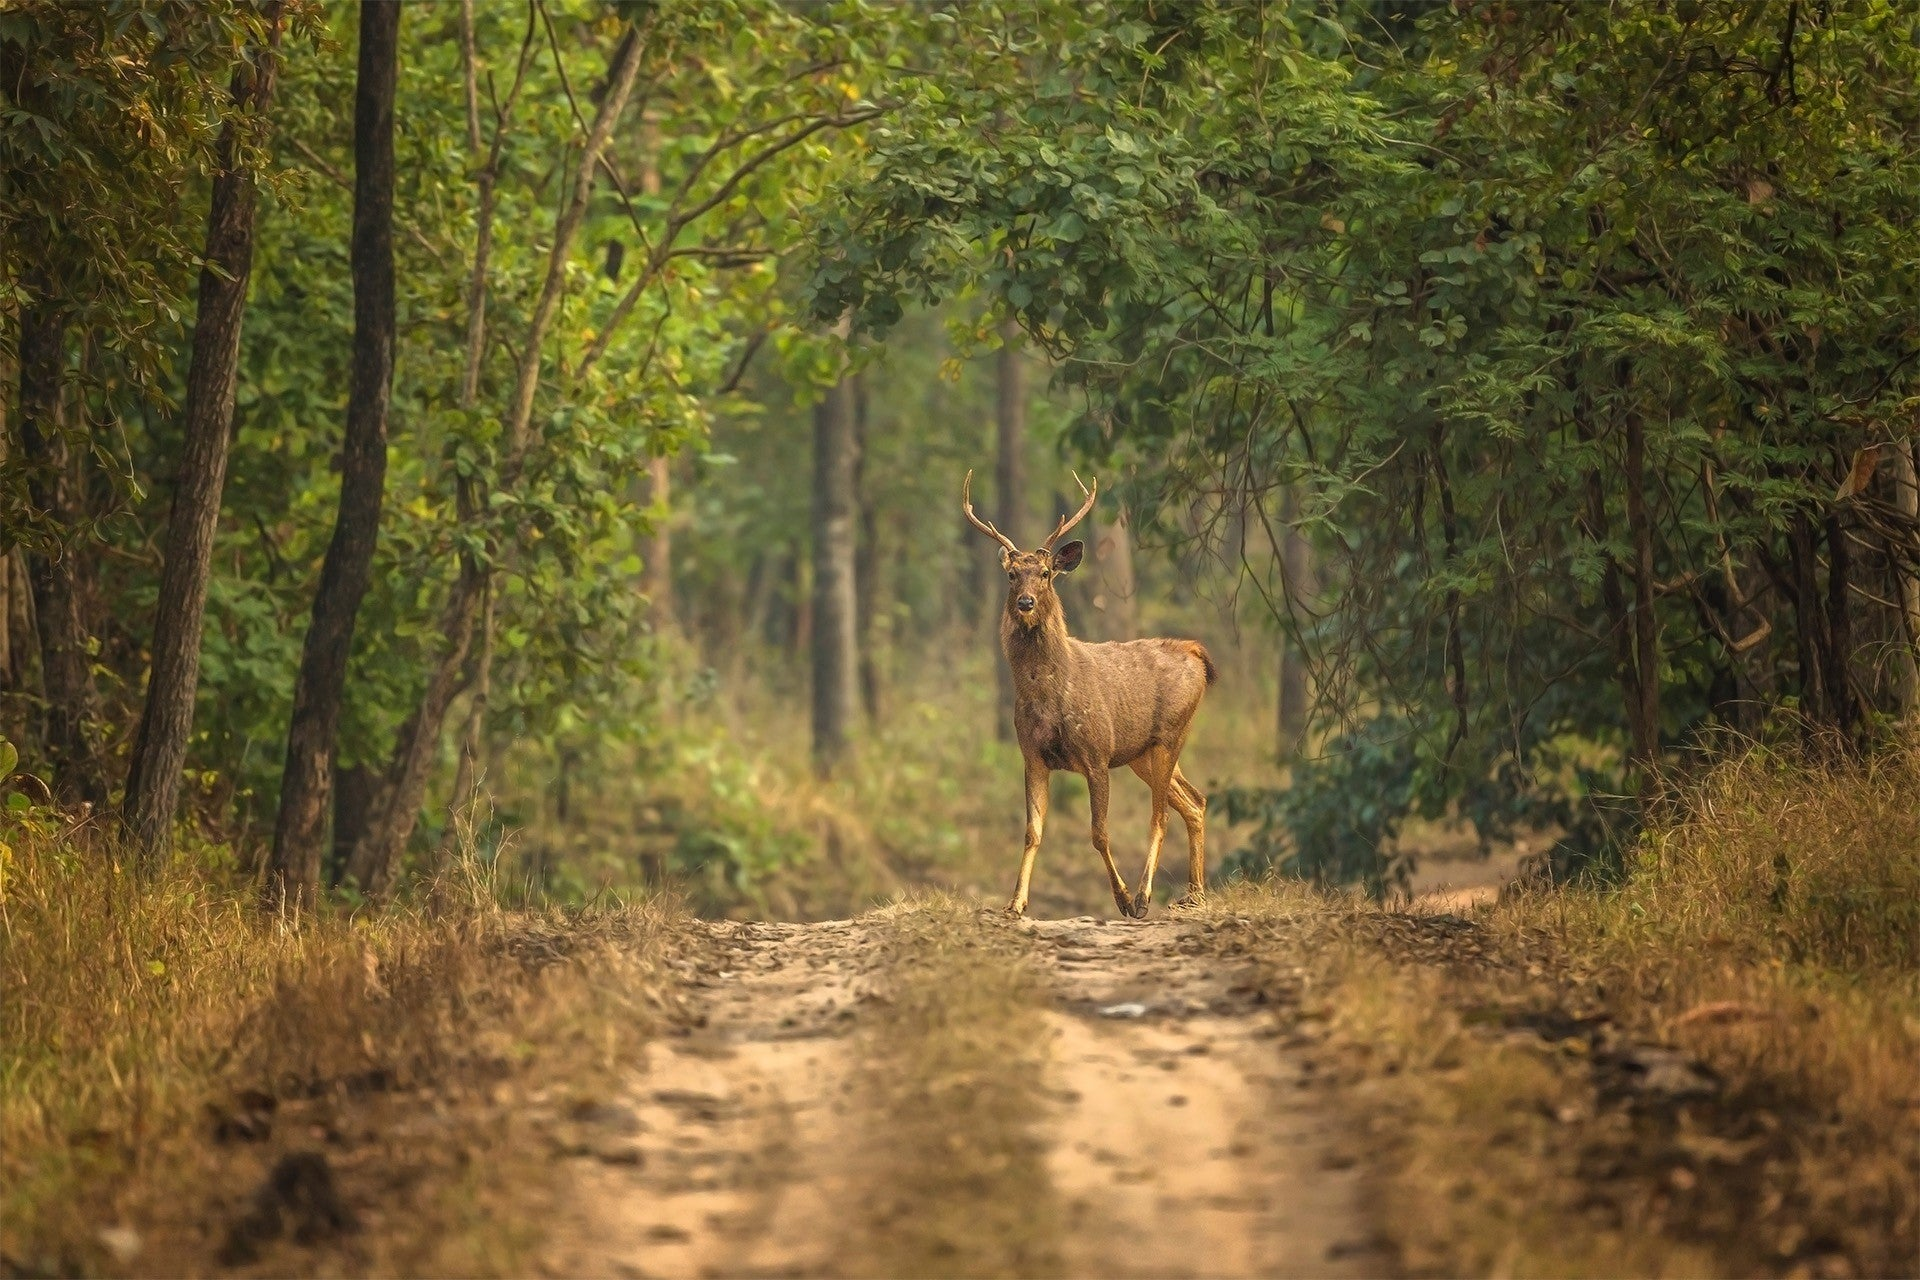 pench-deer-free-images